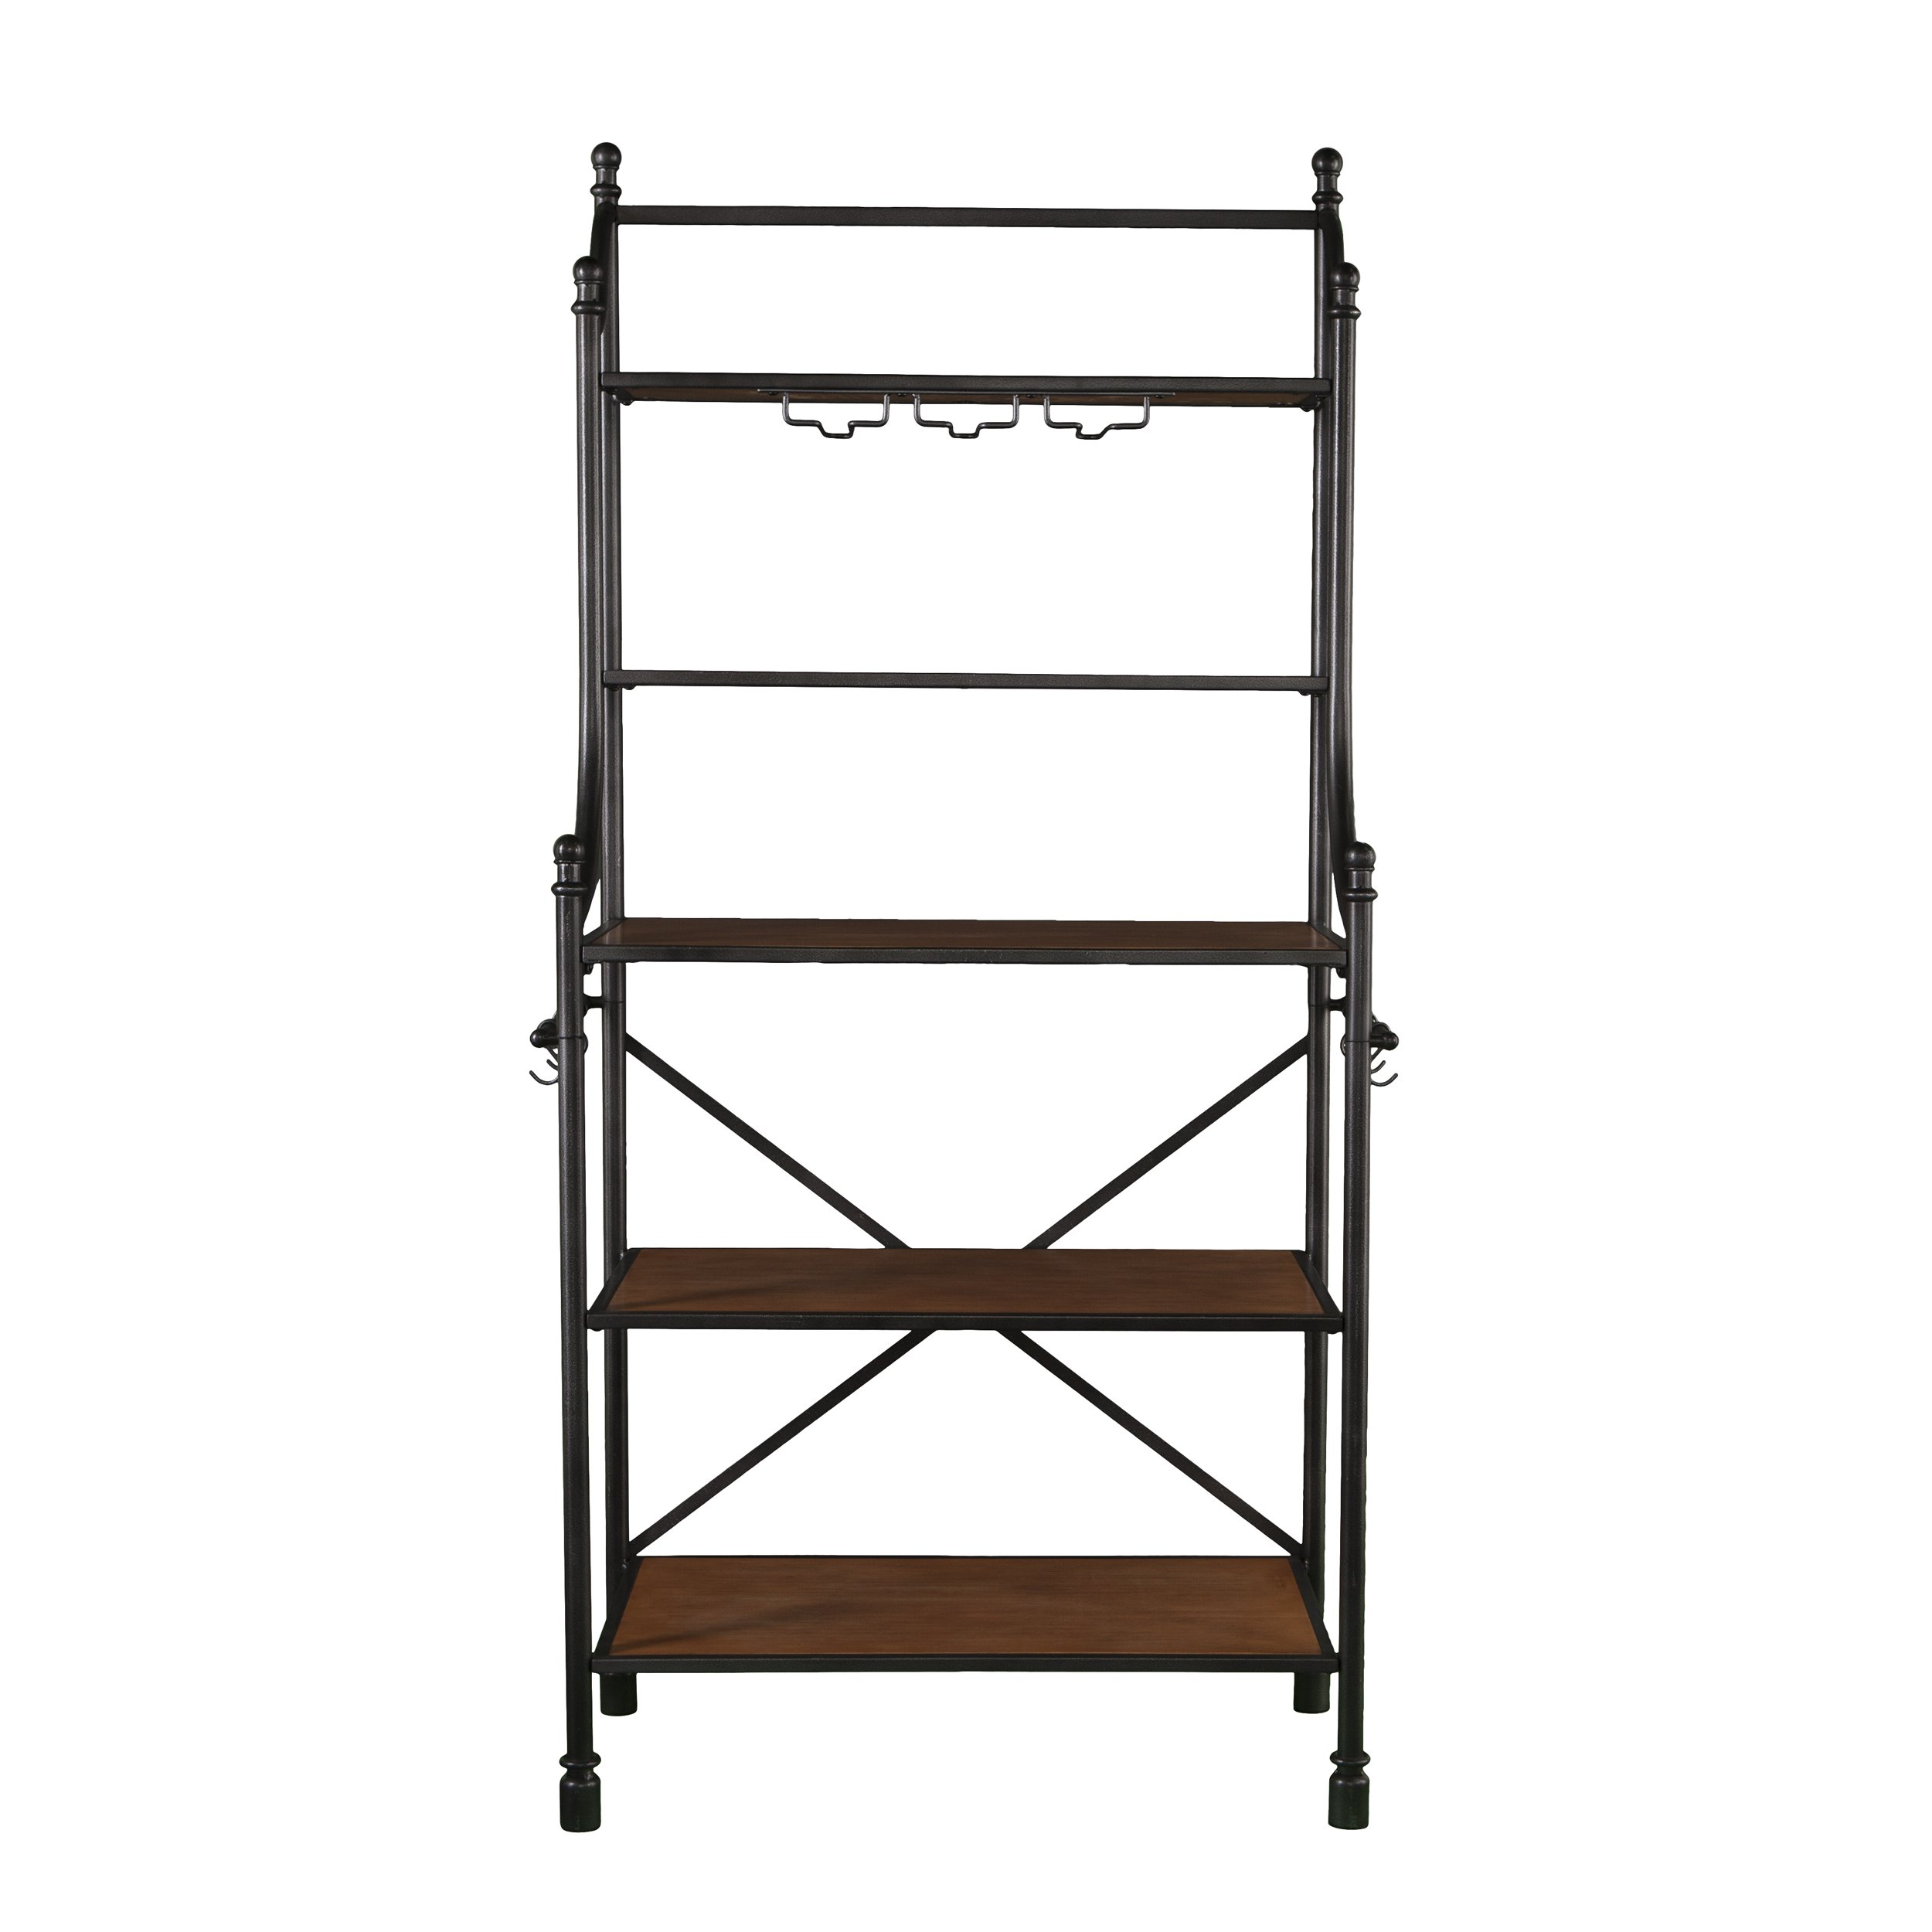 Furniture HotSpot - Bakers Rack/Microwave Stand - Black w/ Honey Pine - 33'' W x 17'' D x 66.25'' H